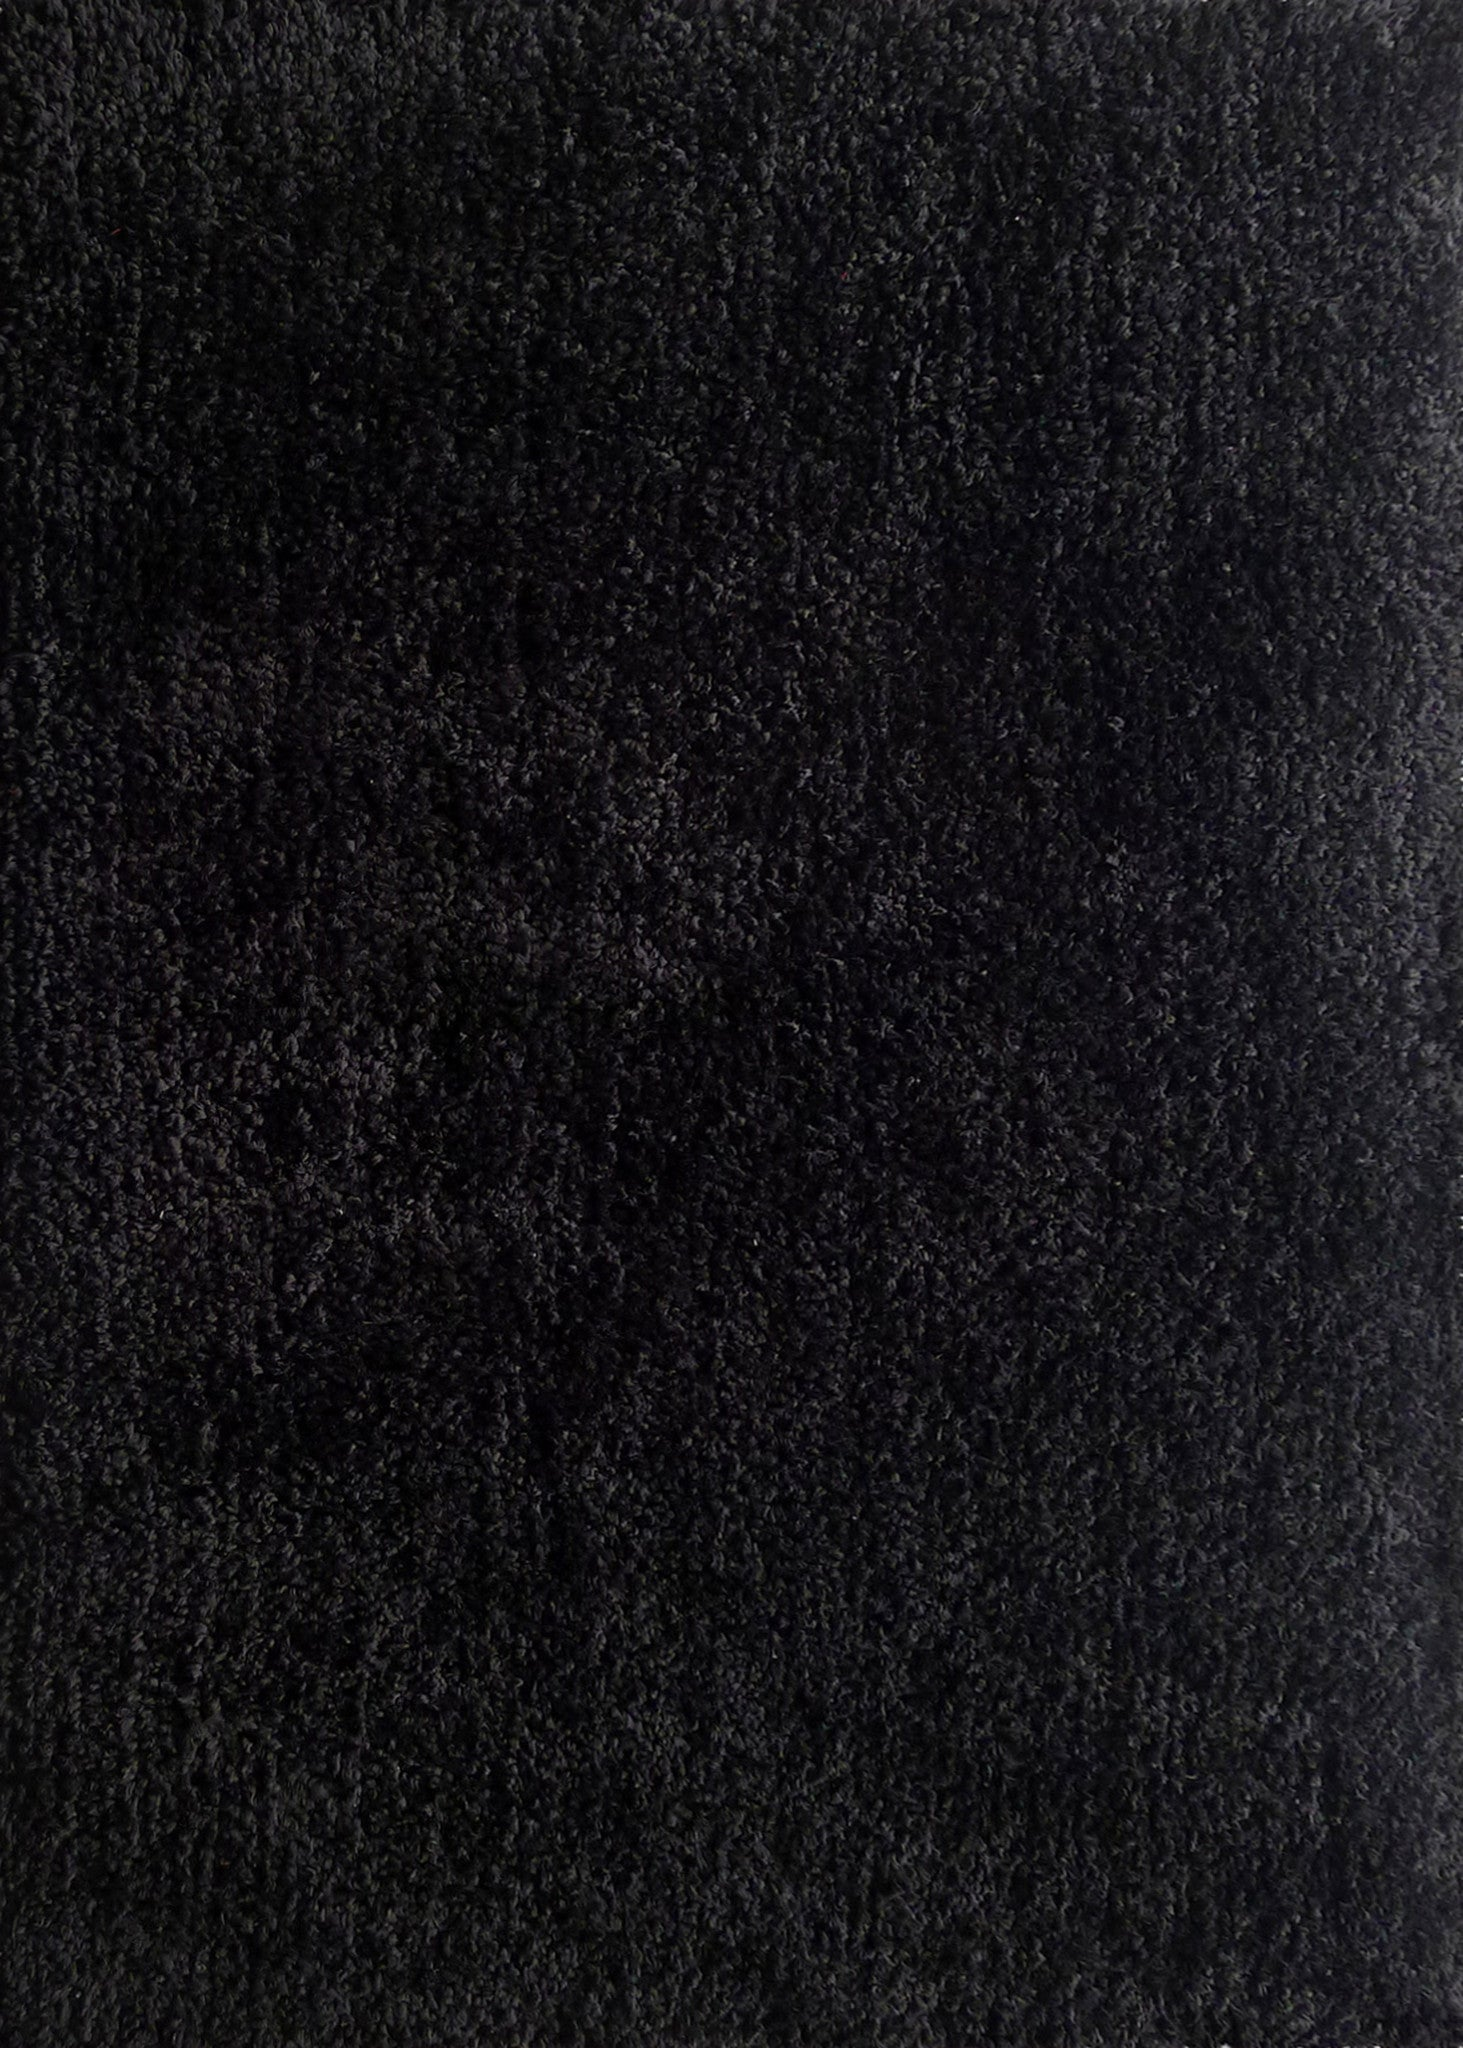 Contemporary Black Rug Texture Solid Thick Plush Shag Area X Ft N To Decor